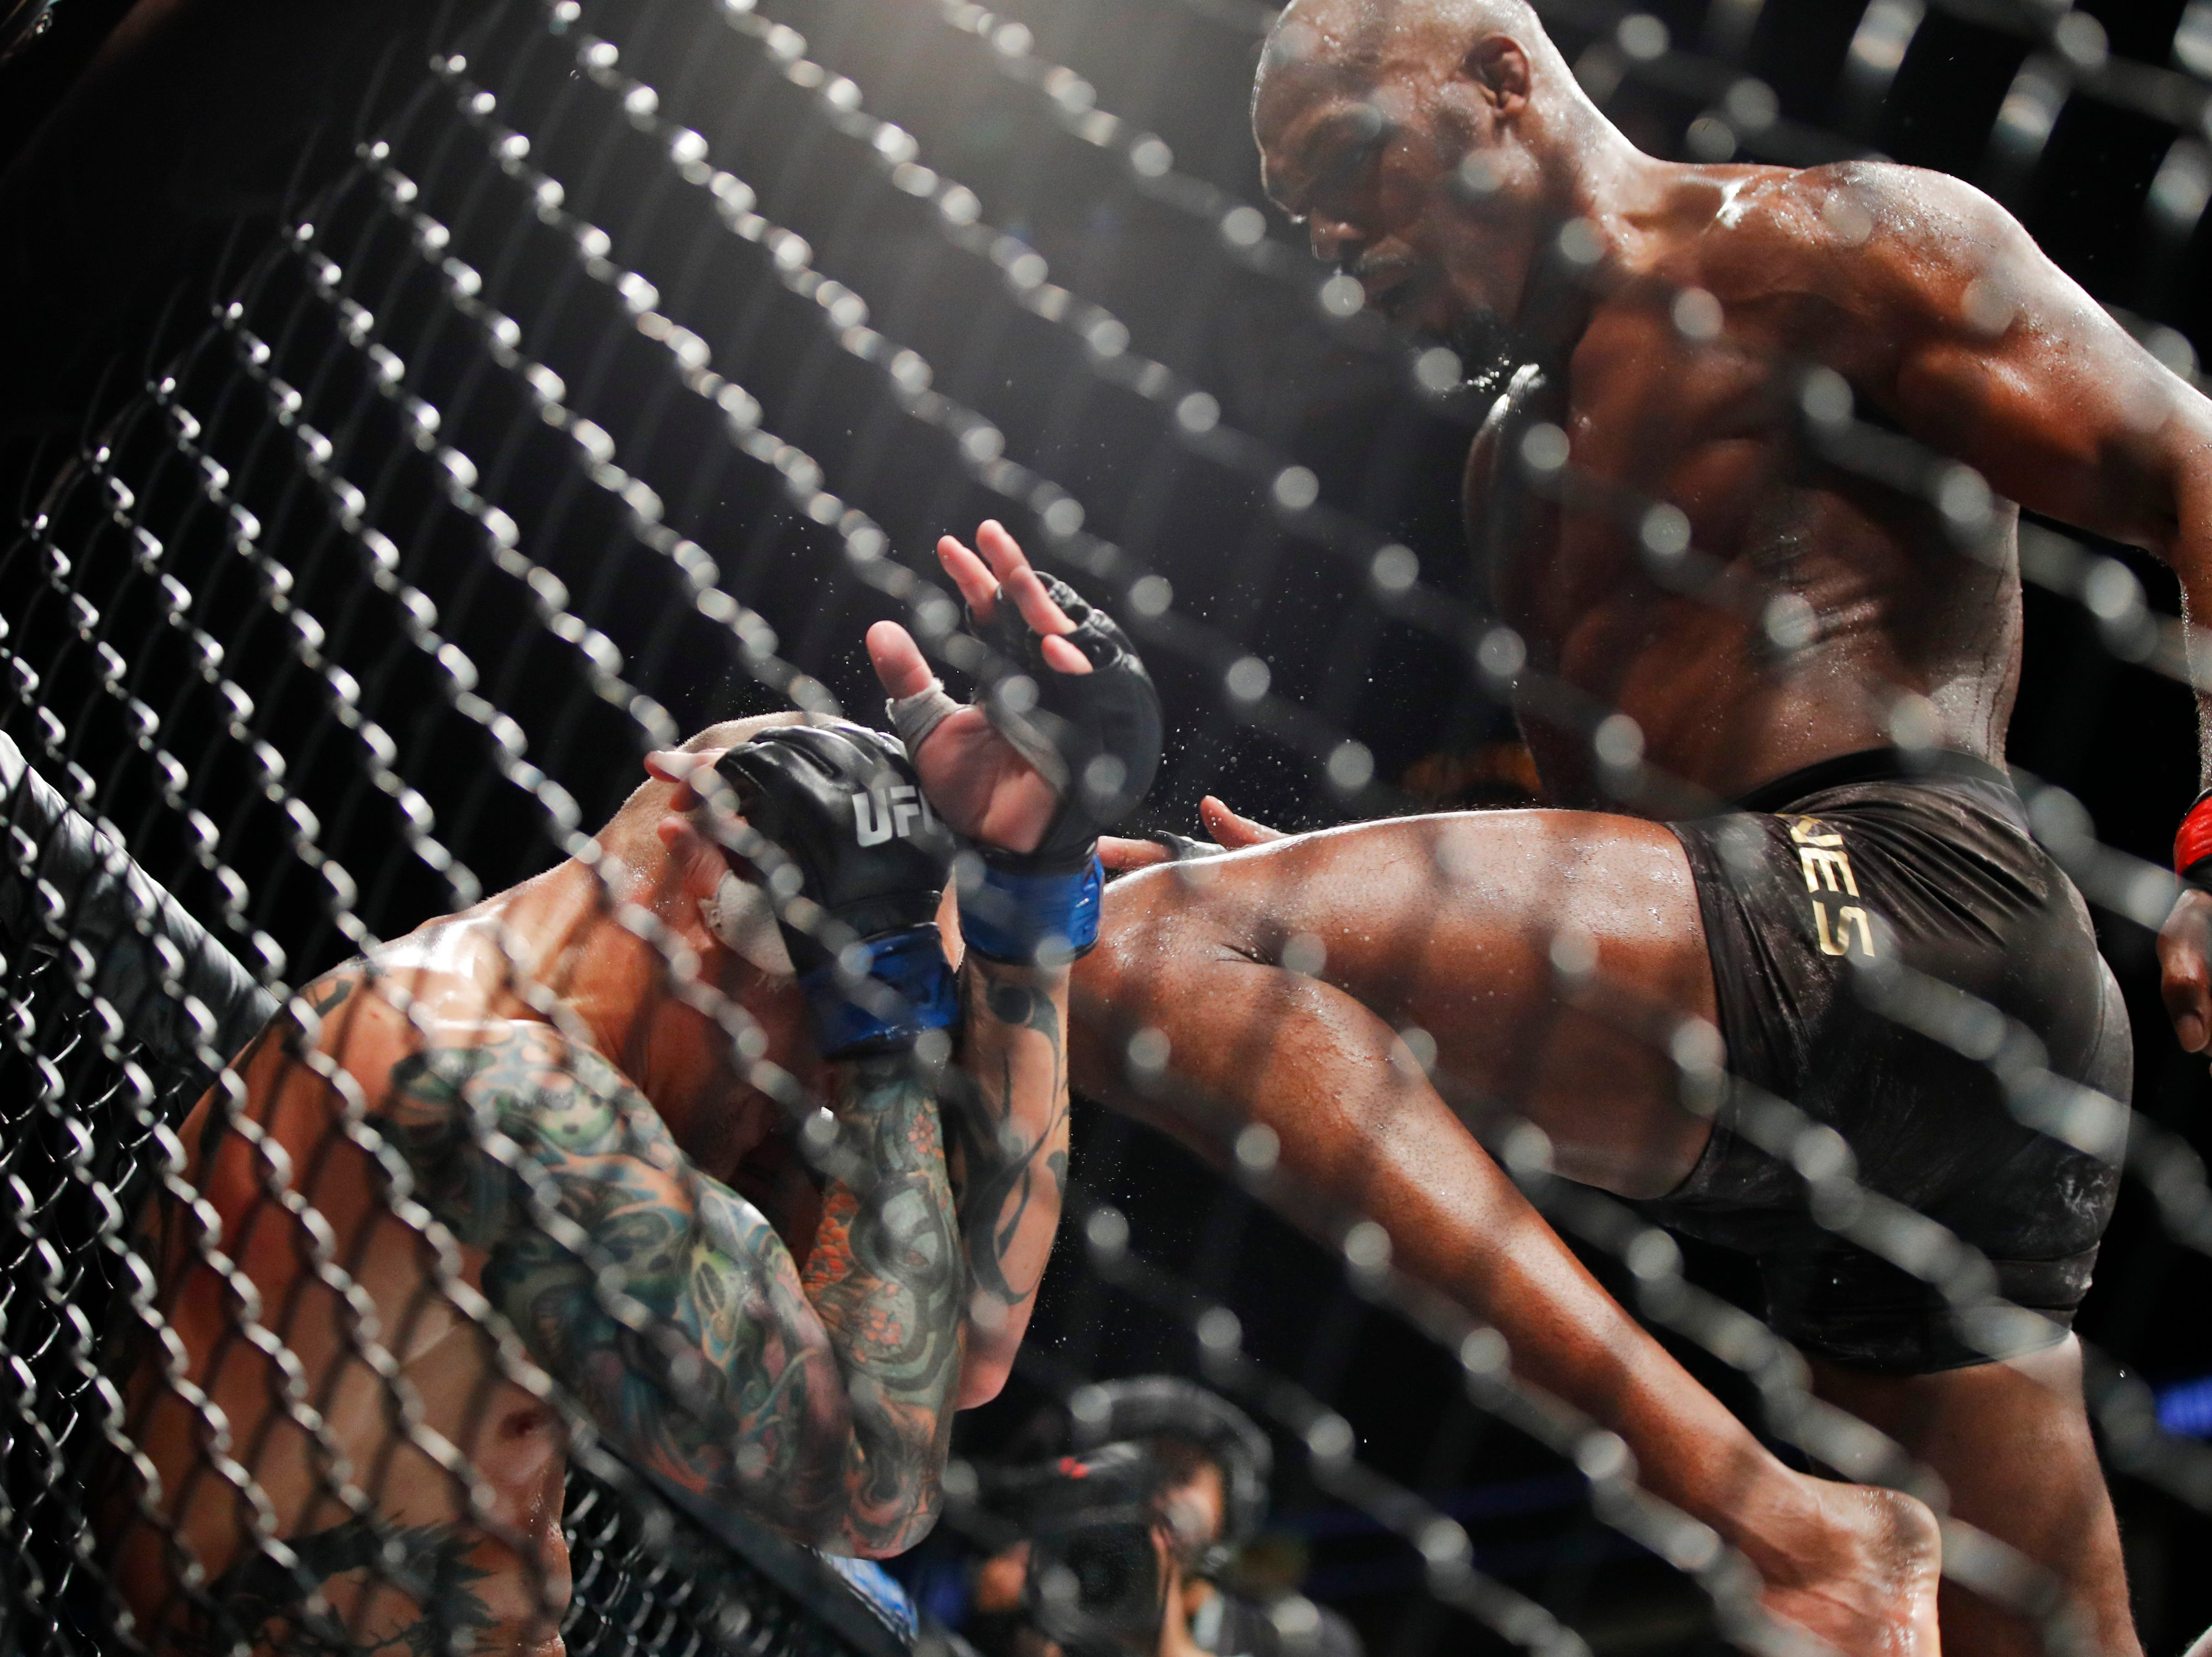 Jon Jones, right, fights Anthony Smith in a light heavyweight mixed martial arts title bout at UFC 235, Saturday, March 2, 2019, in Las Vegas. (AP Photo/John Locher)